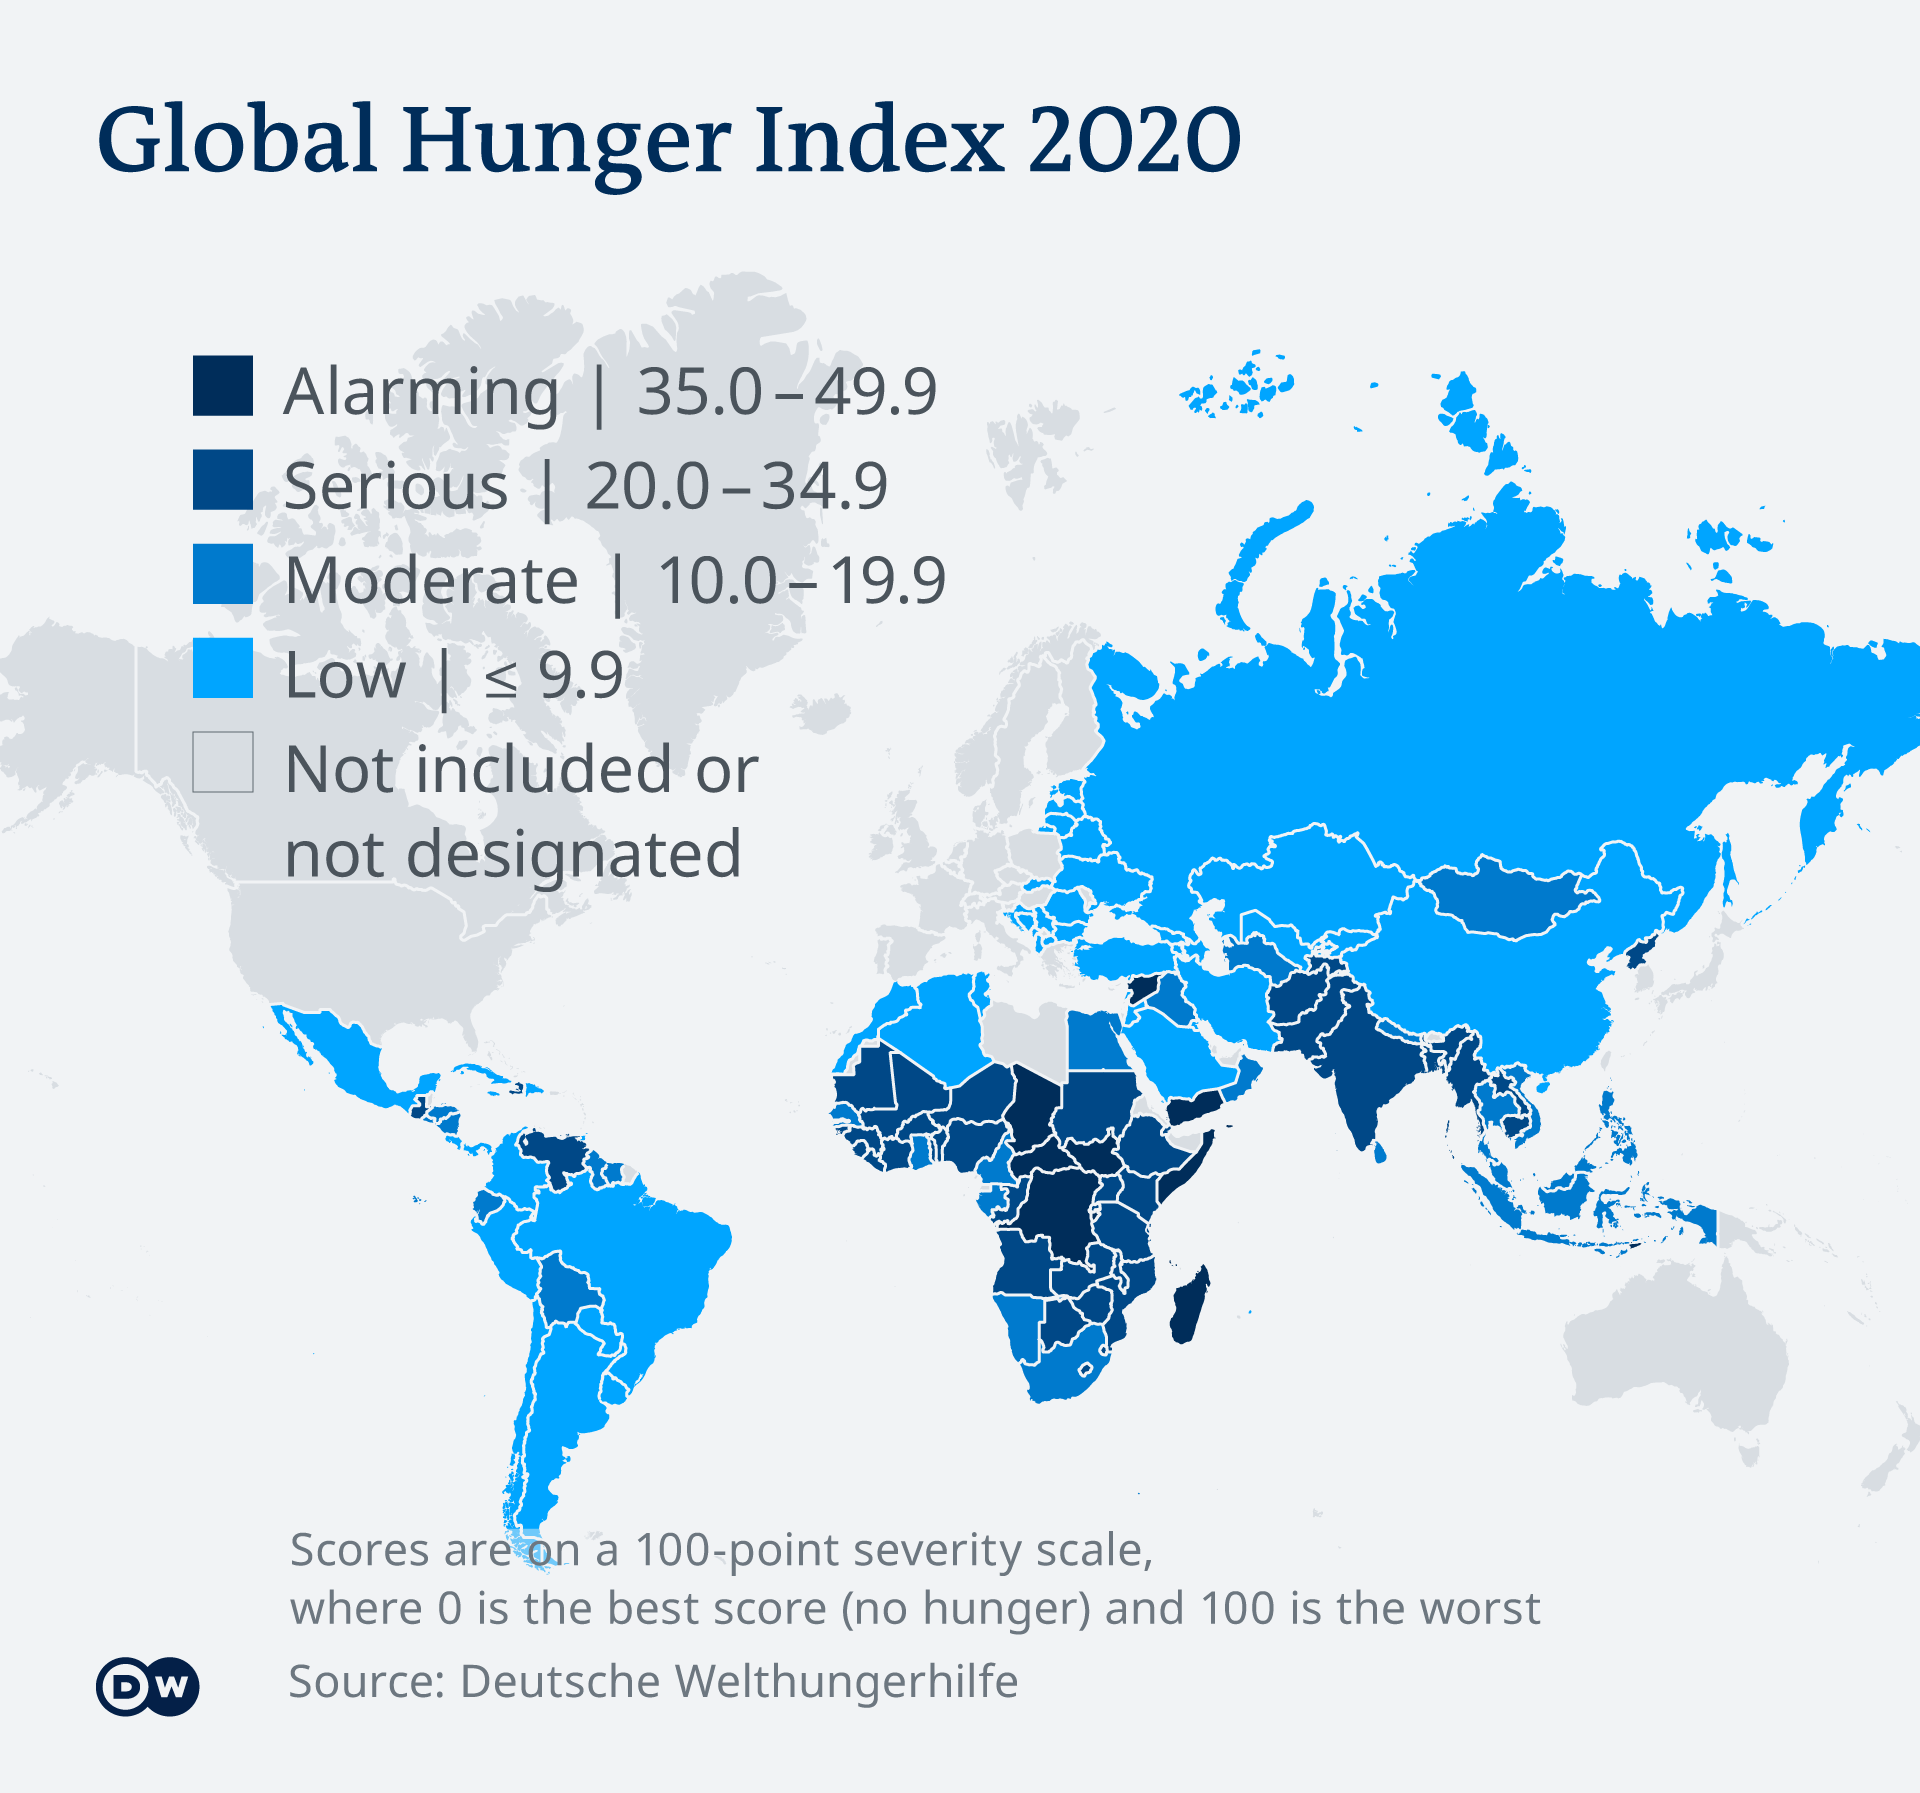 Infographic showing the Global Hunger Index for 2020